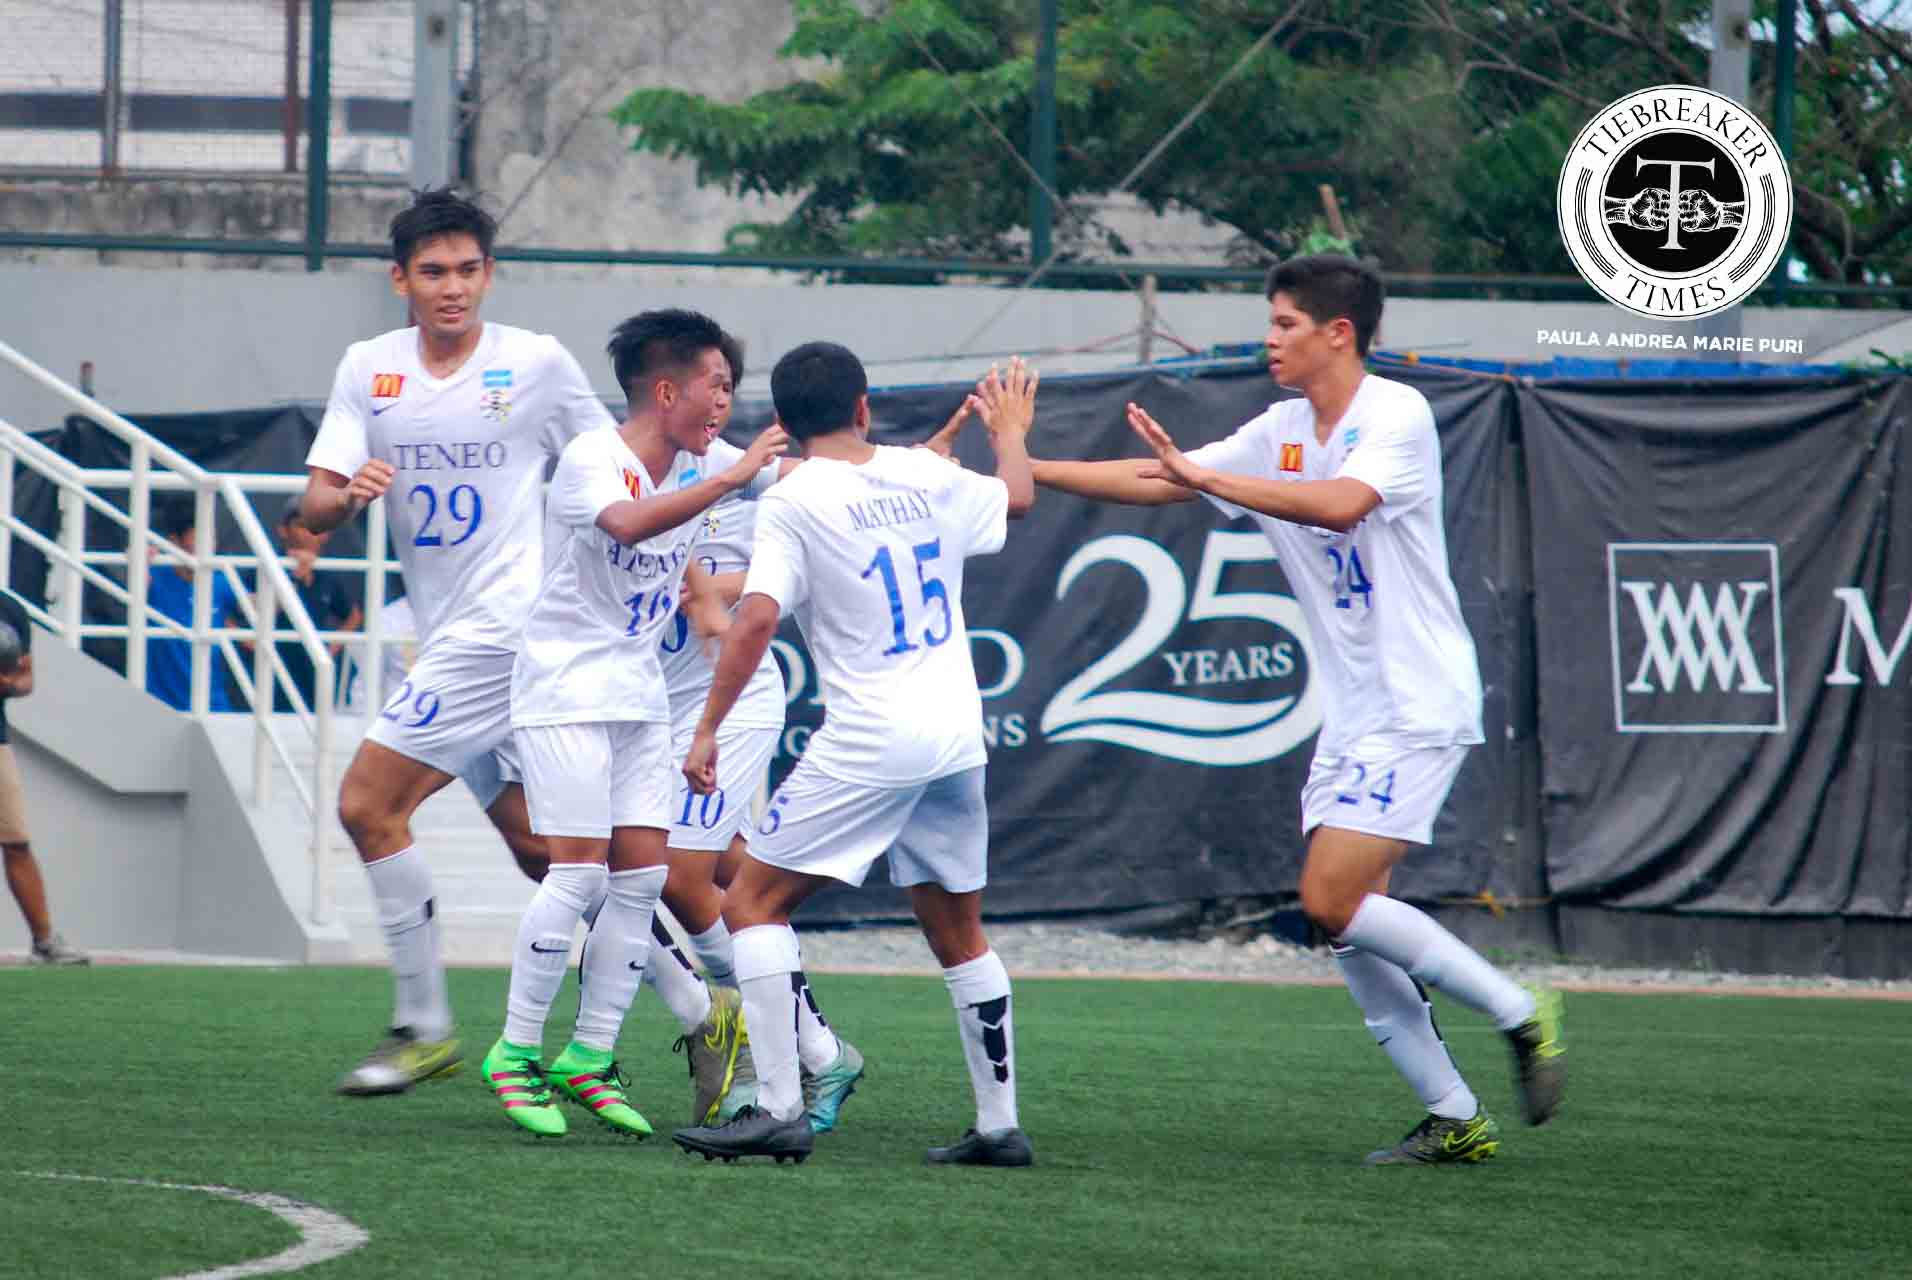 Tiebreaker Times Second-half performance the difference as Ateneo surges past UST ADMU Football News UAAP UST  Xavier Alcuaz UST Men's Football Team UAAP Season 78 Football UAAP Season 78 Rey Catalino Renz Gumban Mikko Mabanag Michael Castillo Mashu Yoshioka JP Oracion JP Merida Jarvey Ocampo Gayoso Emilio Acosta Alfredo Mathay AJ Pasion ADMU Men's Football Team